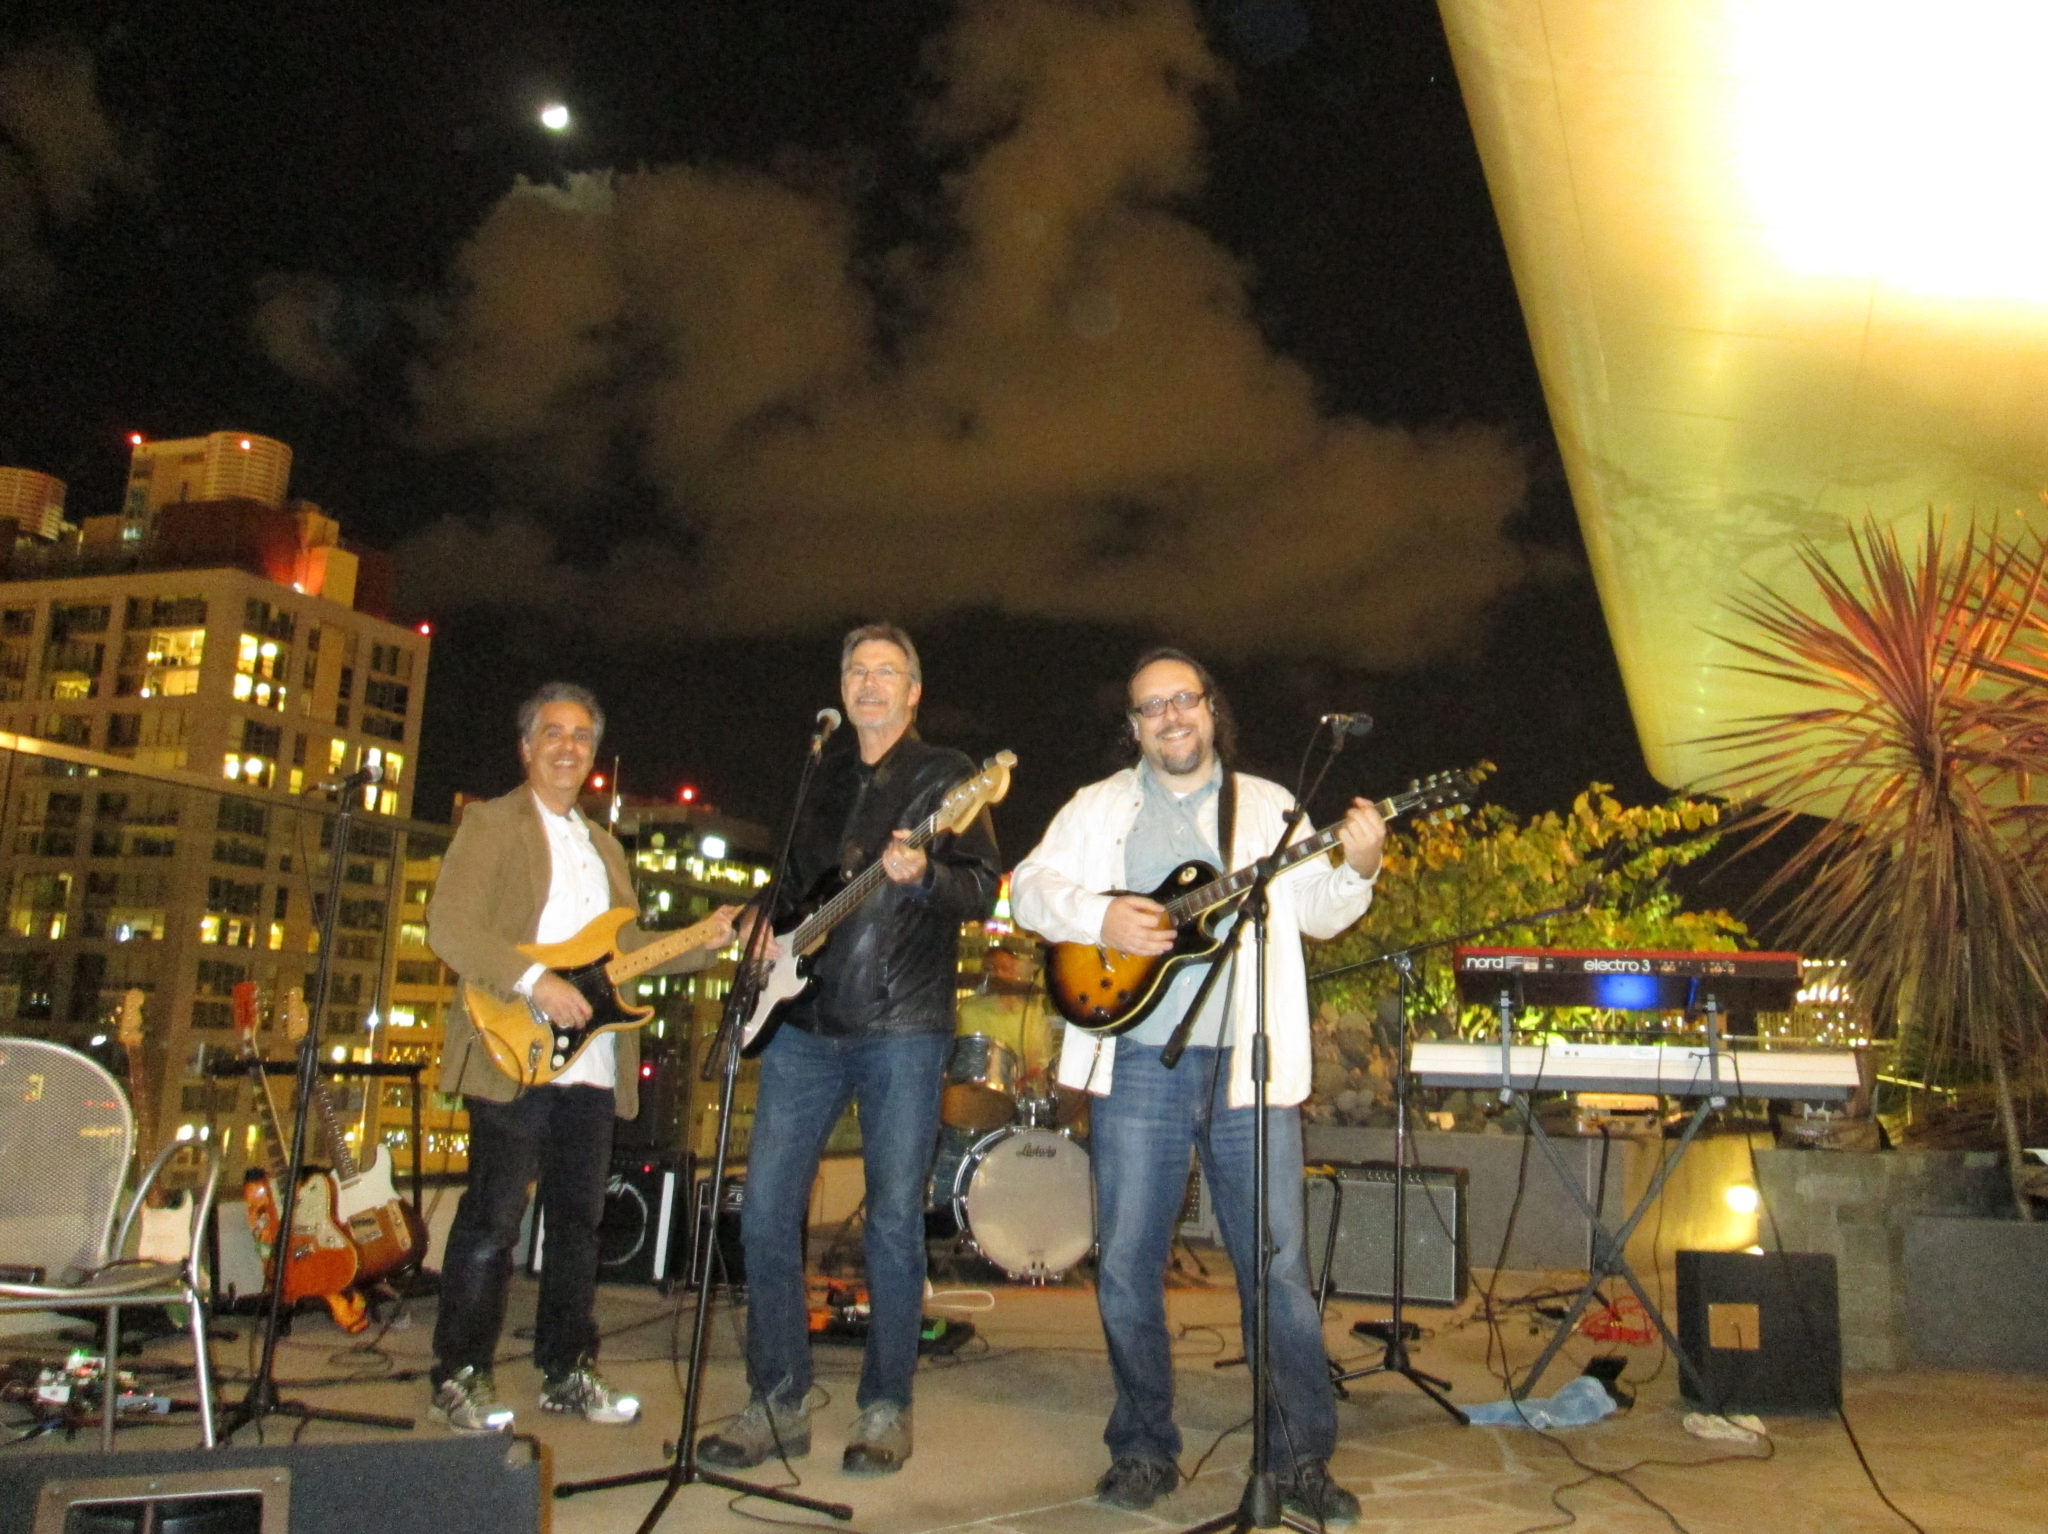 The Innocent Bystanders play in downtown San Diego